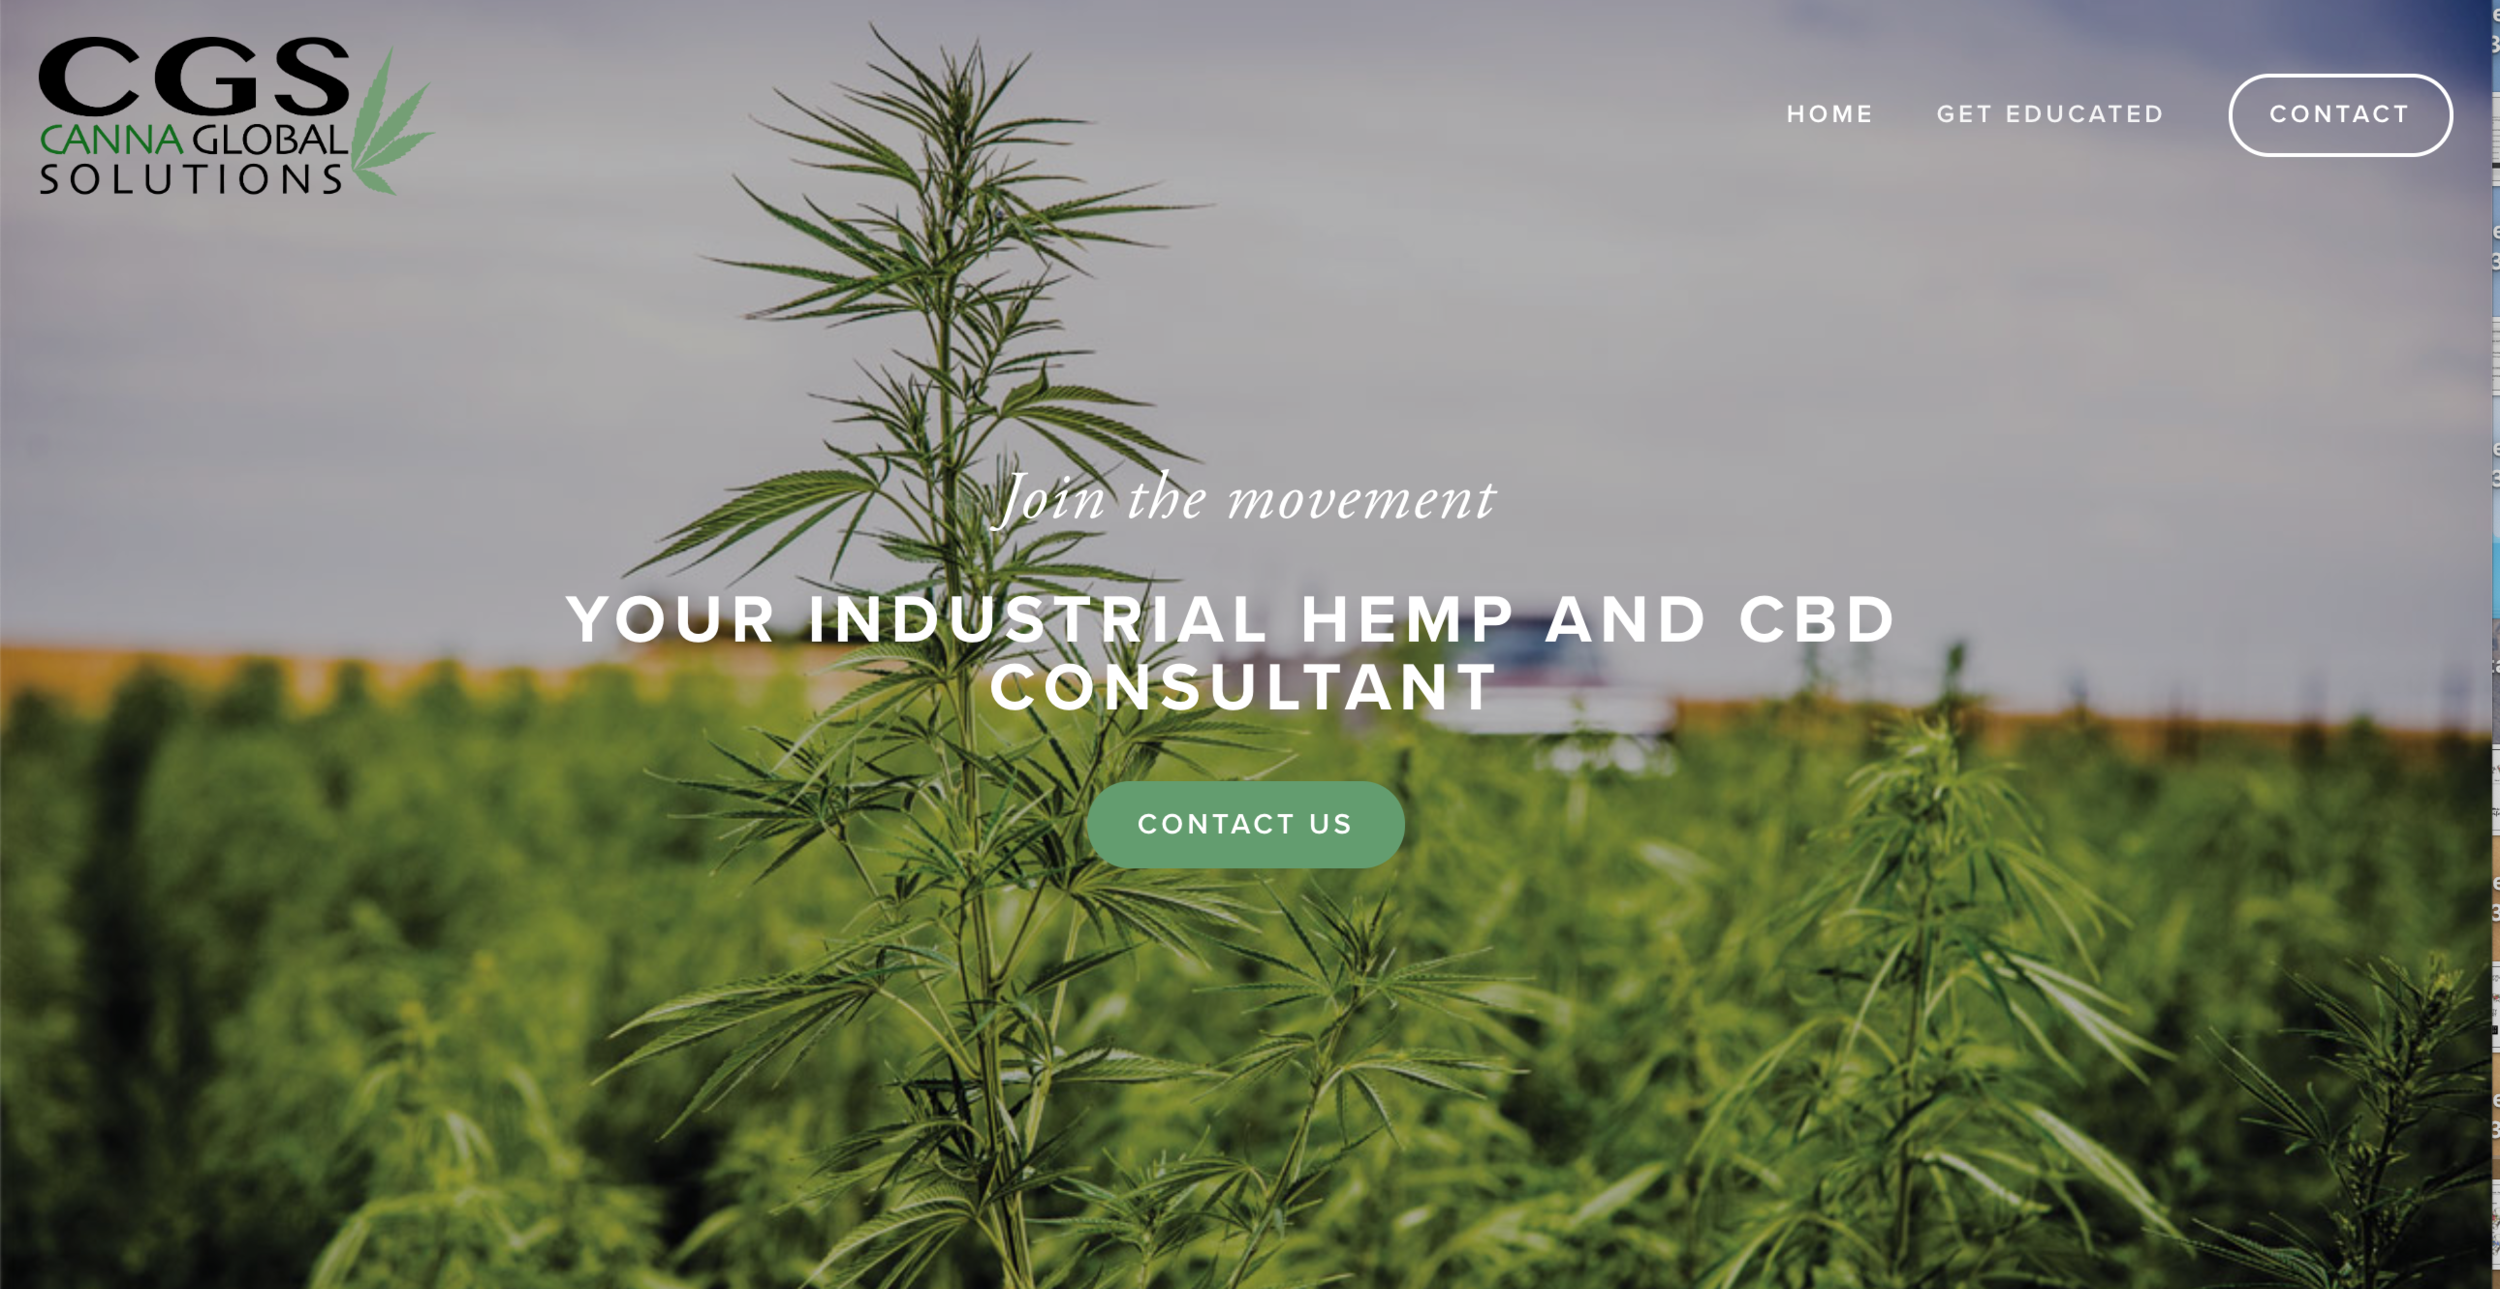 CANNA GLOBAL SOLUTIONS | CBD, HEMP CONSULTANT   Website design, logo and business card design